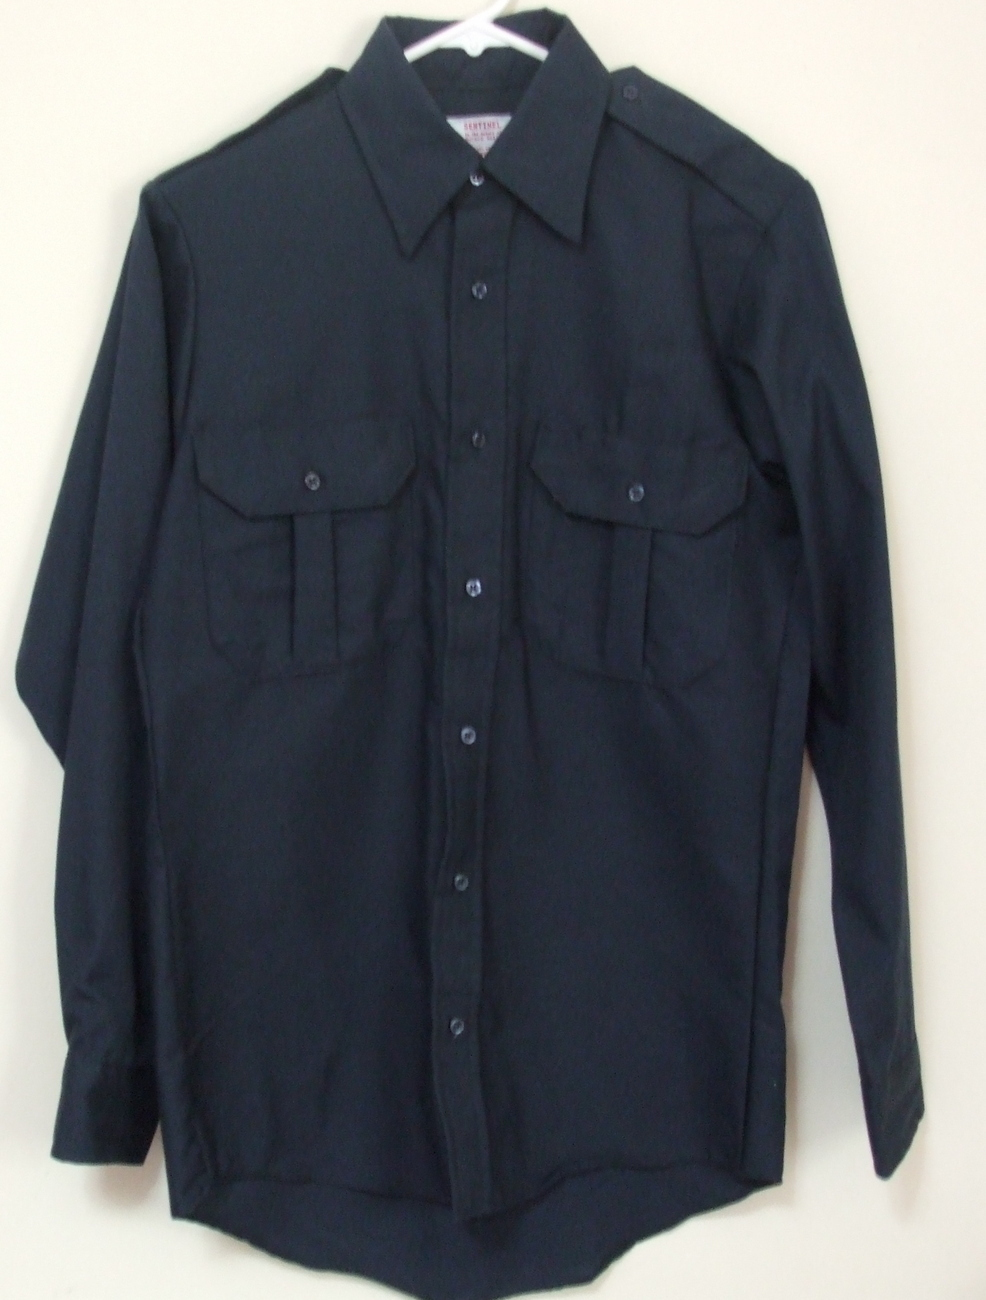 Mens NWOT Sentinel Navy Blue Long Sleeve Work Shirt Size Small